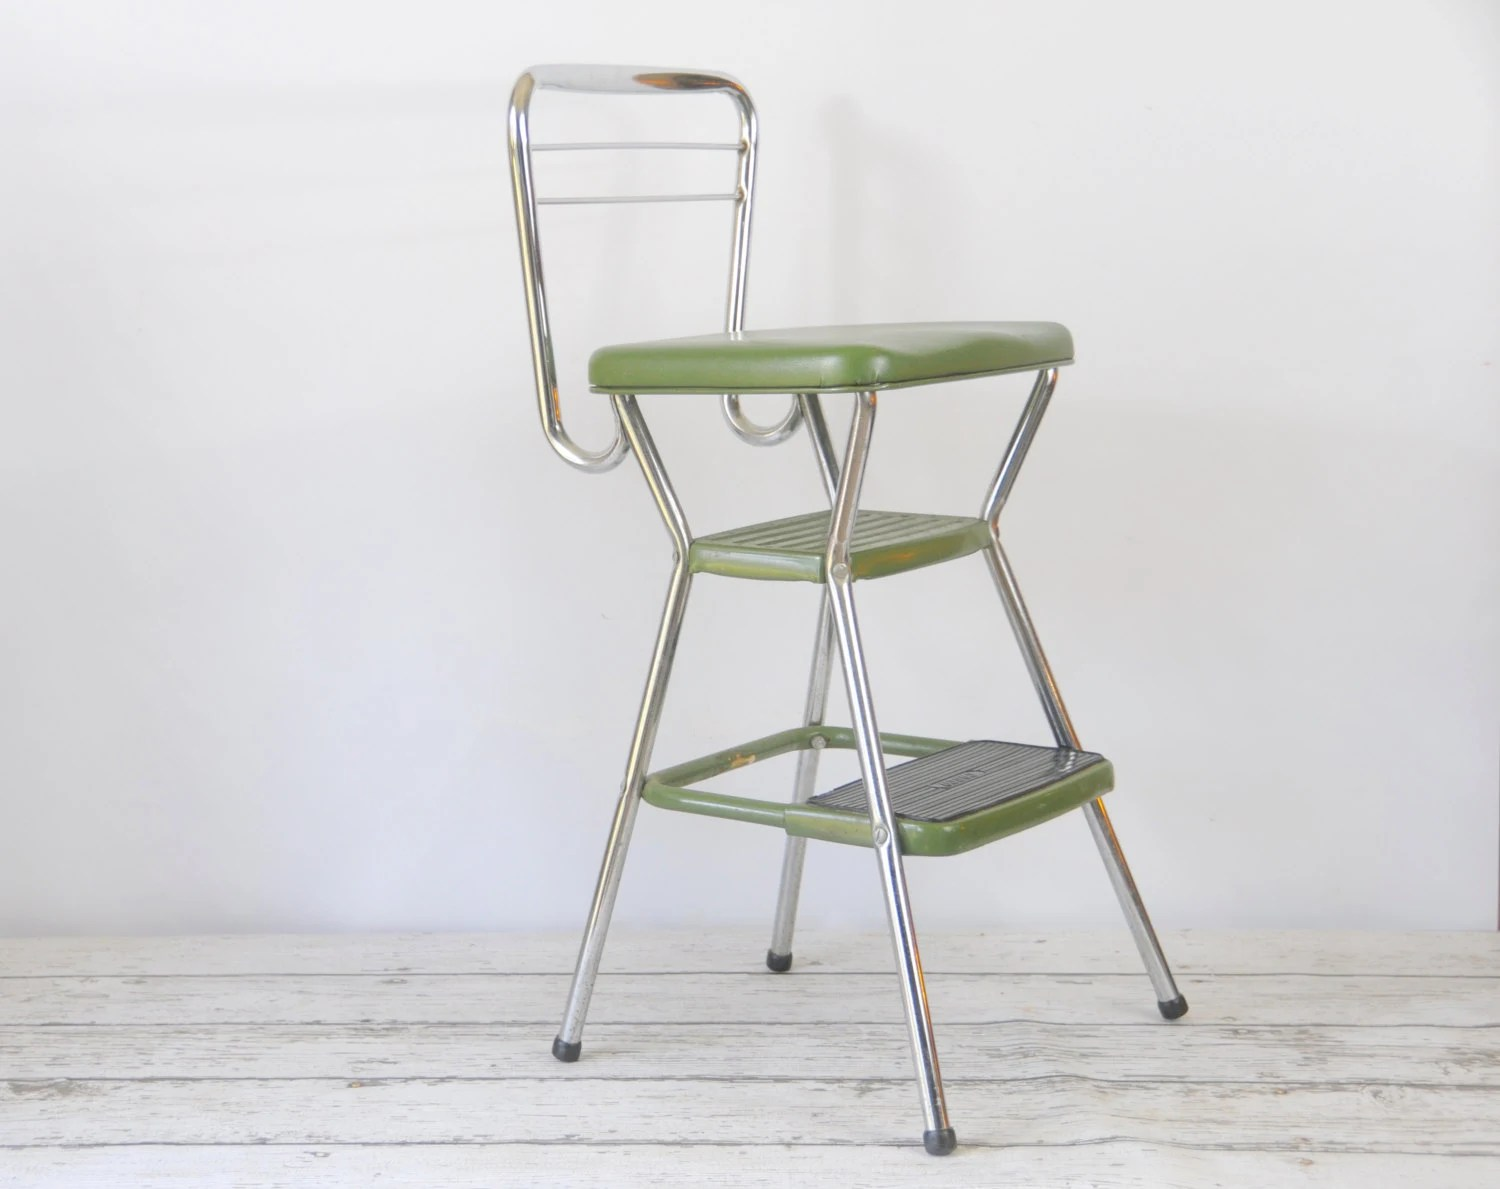 cosco retro counter chair step stool sit me up vintage flip seat booster 1950s good